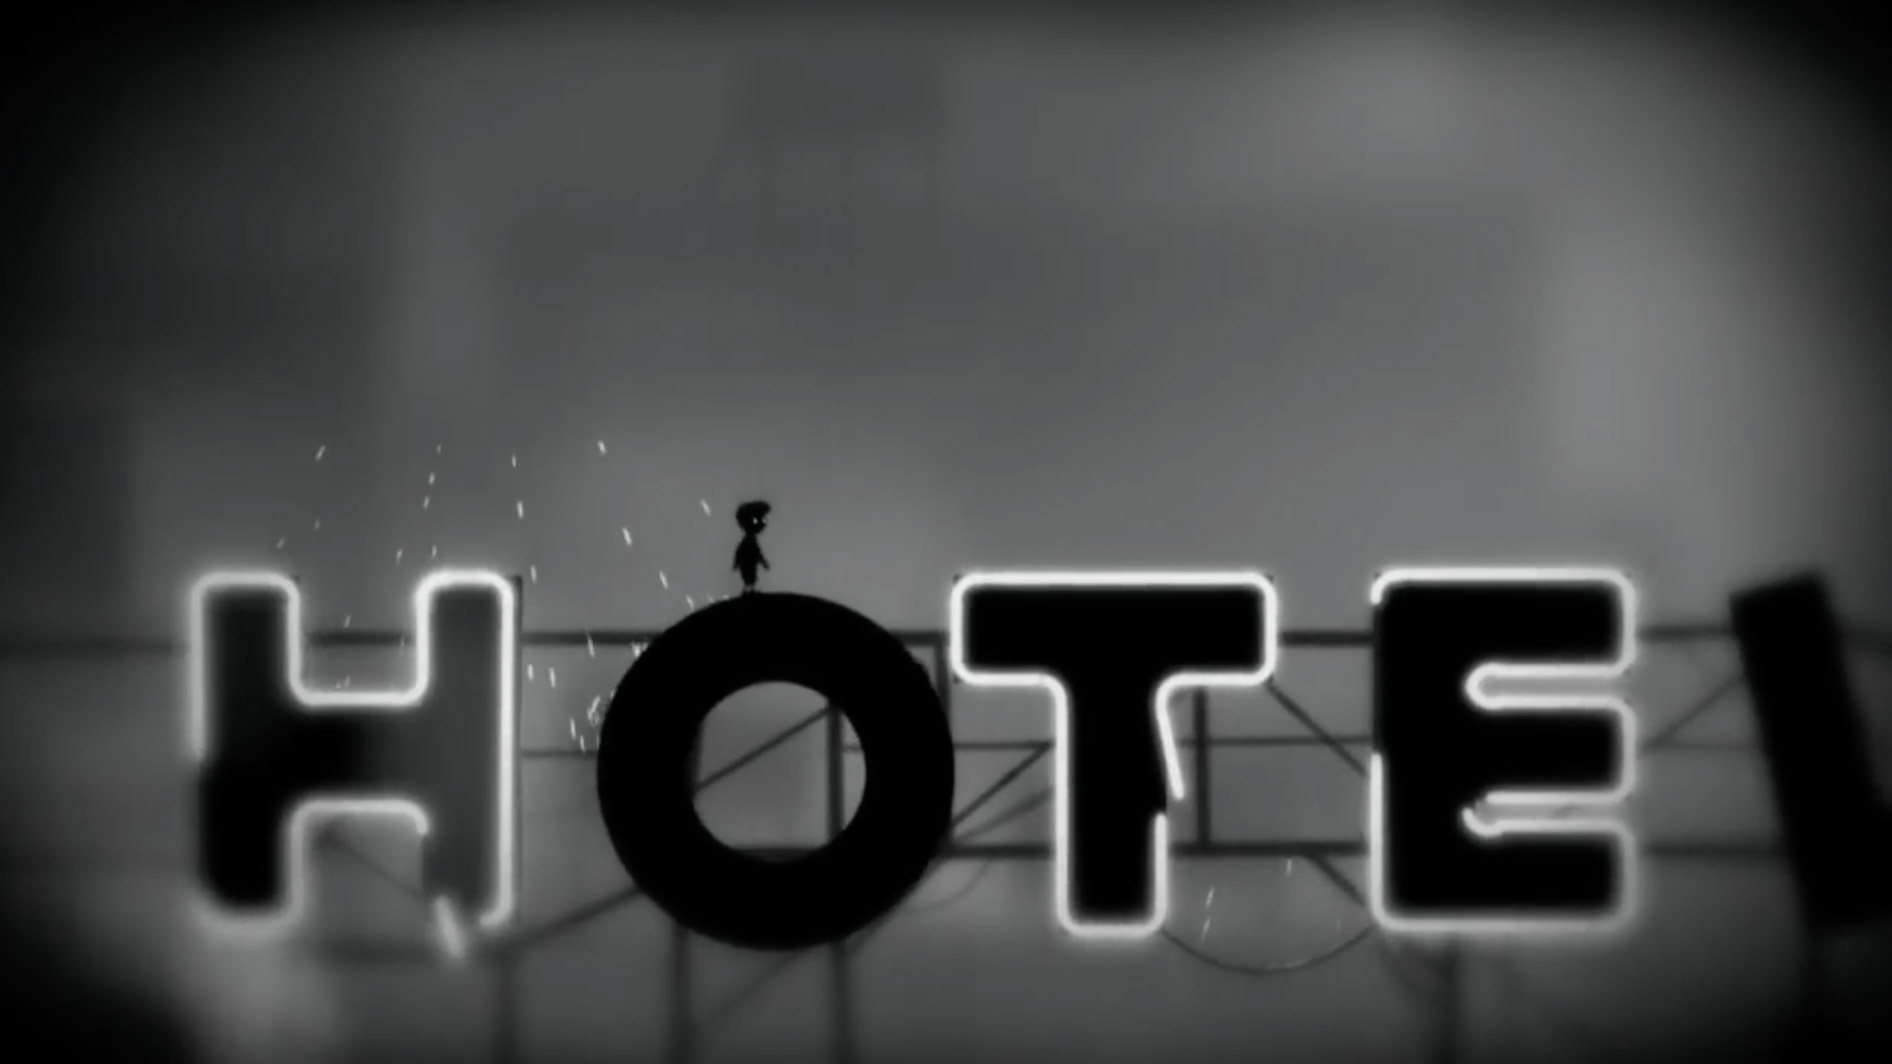 A videogame in black and white